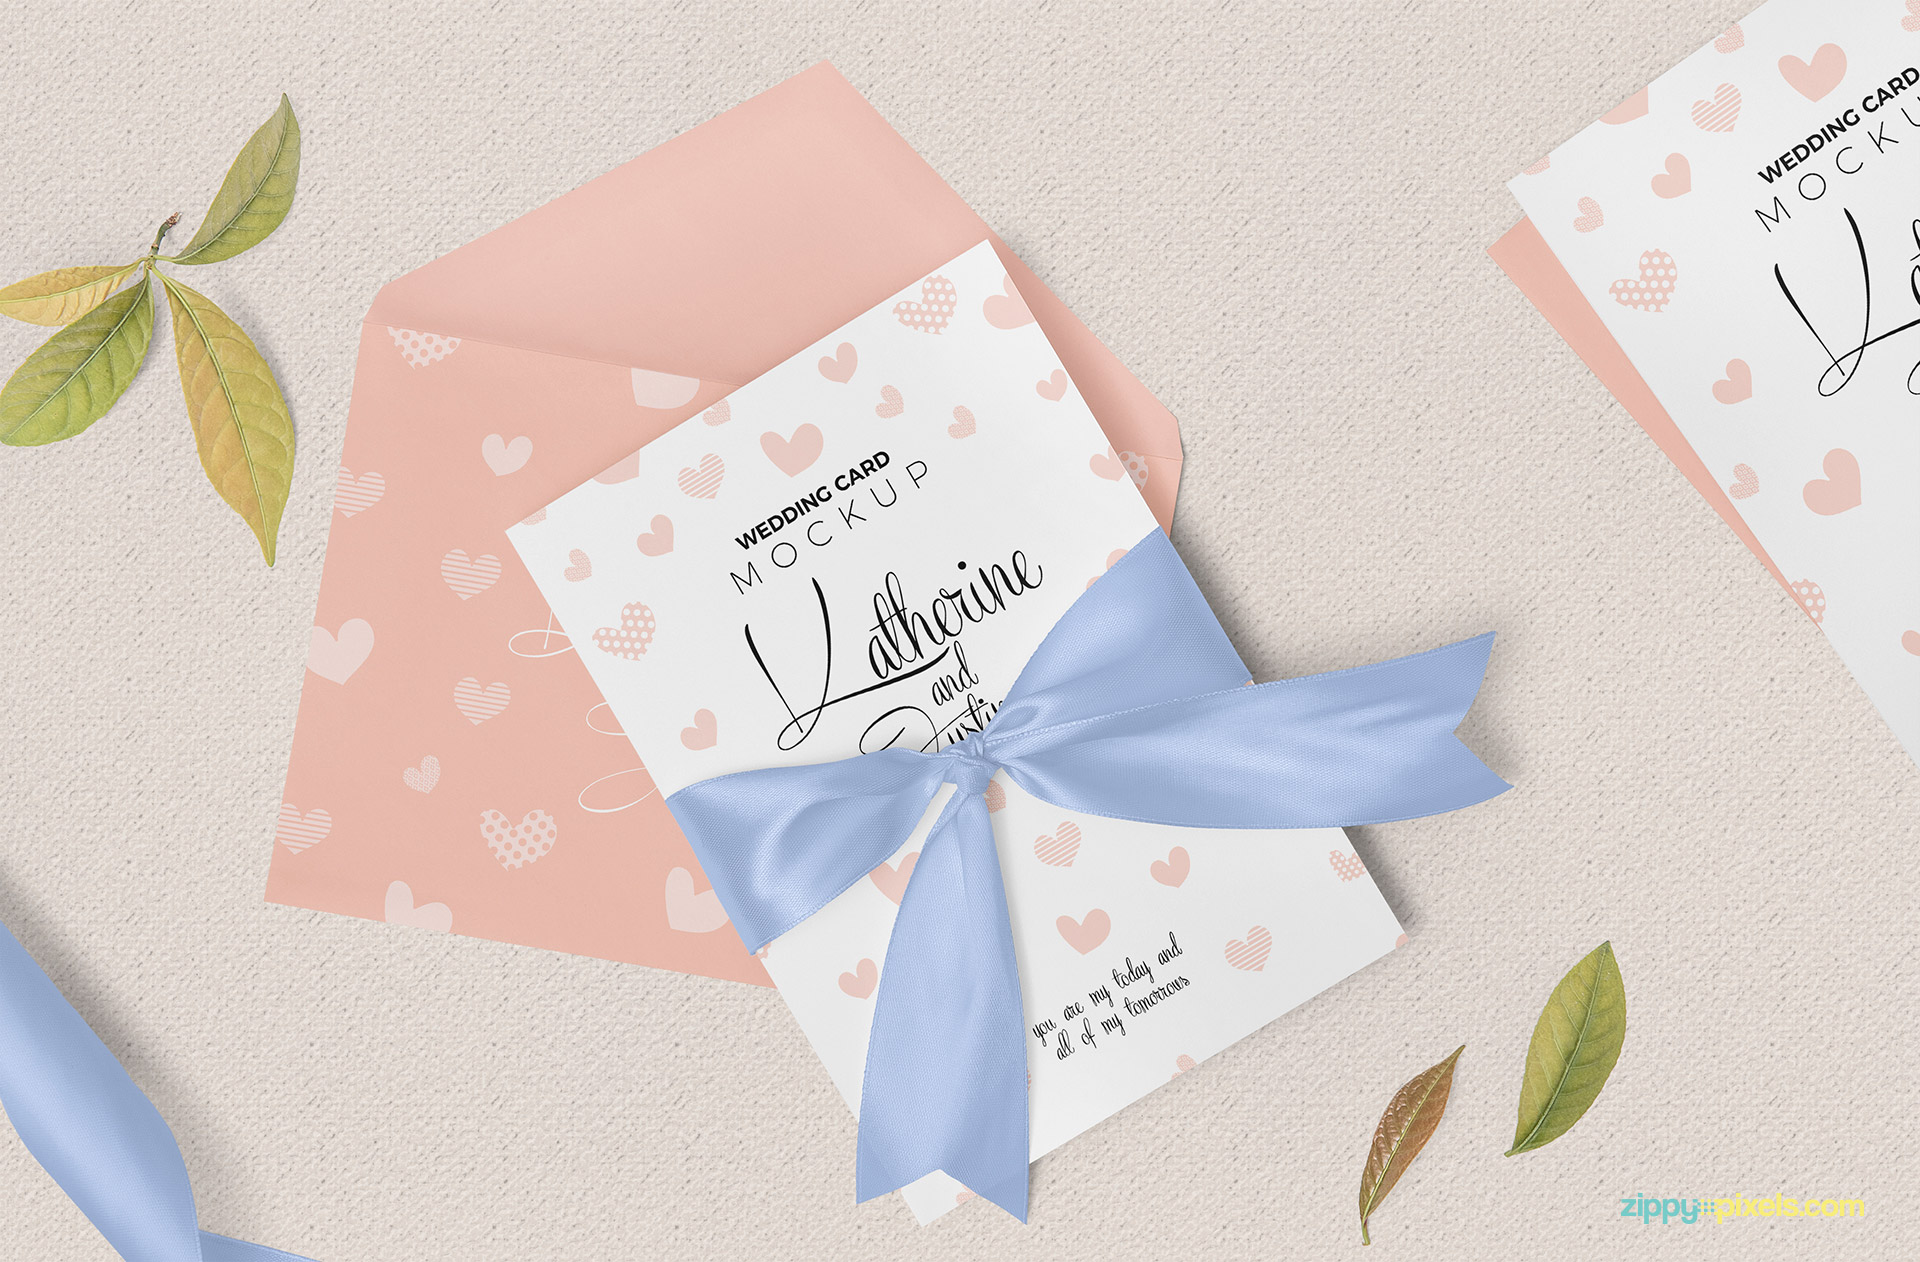 Wedding invitation mockup free PSD.